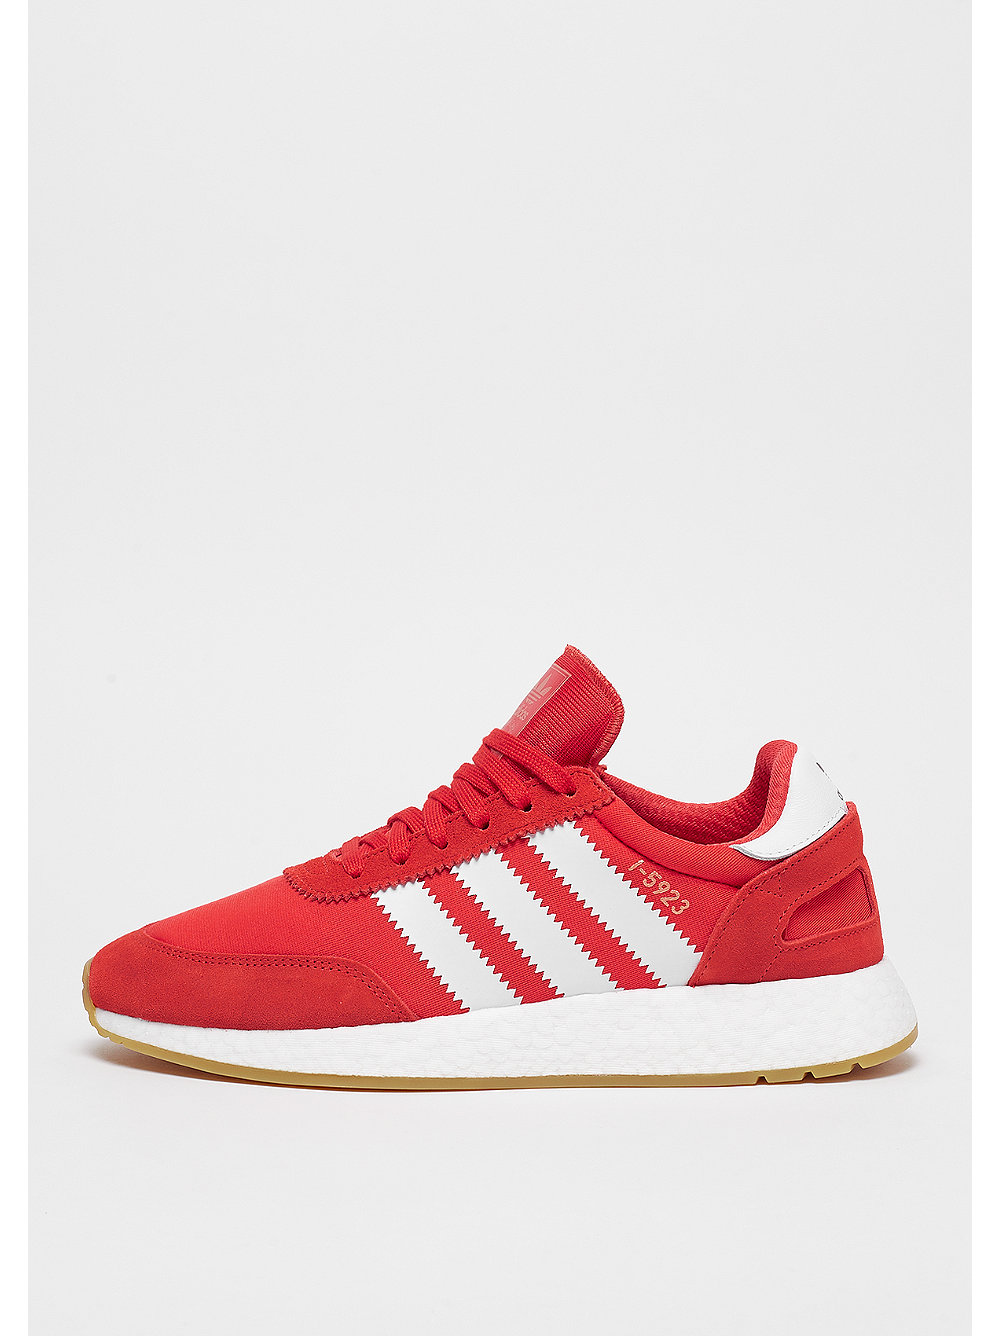 new concept 8a767 3ff36 ... top quality adidas iniki runner red ftwwht gum3 78412 363e1